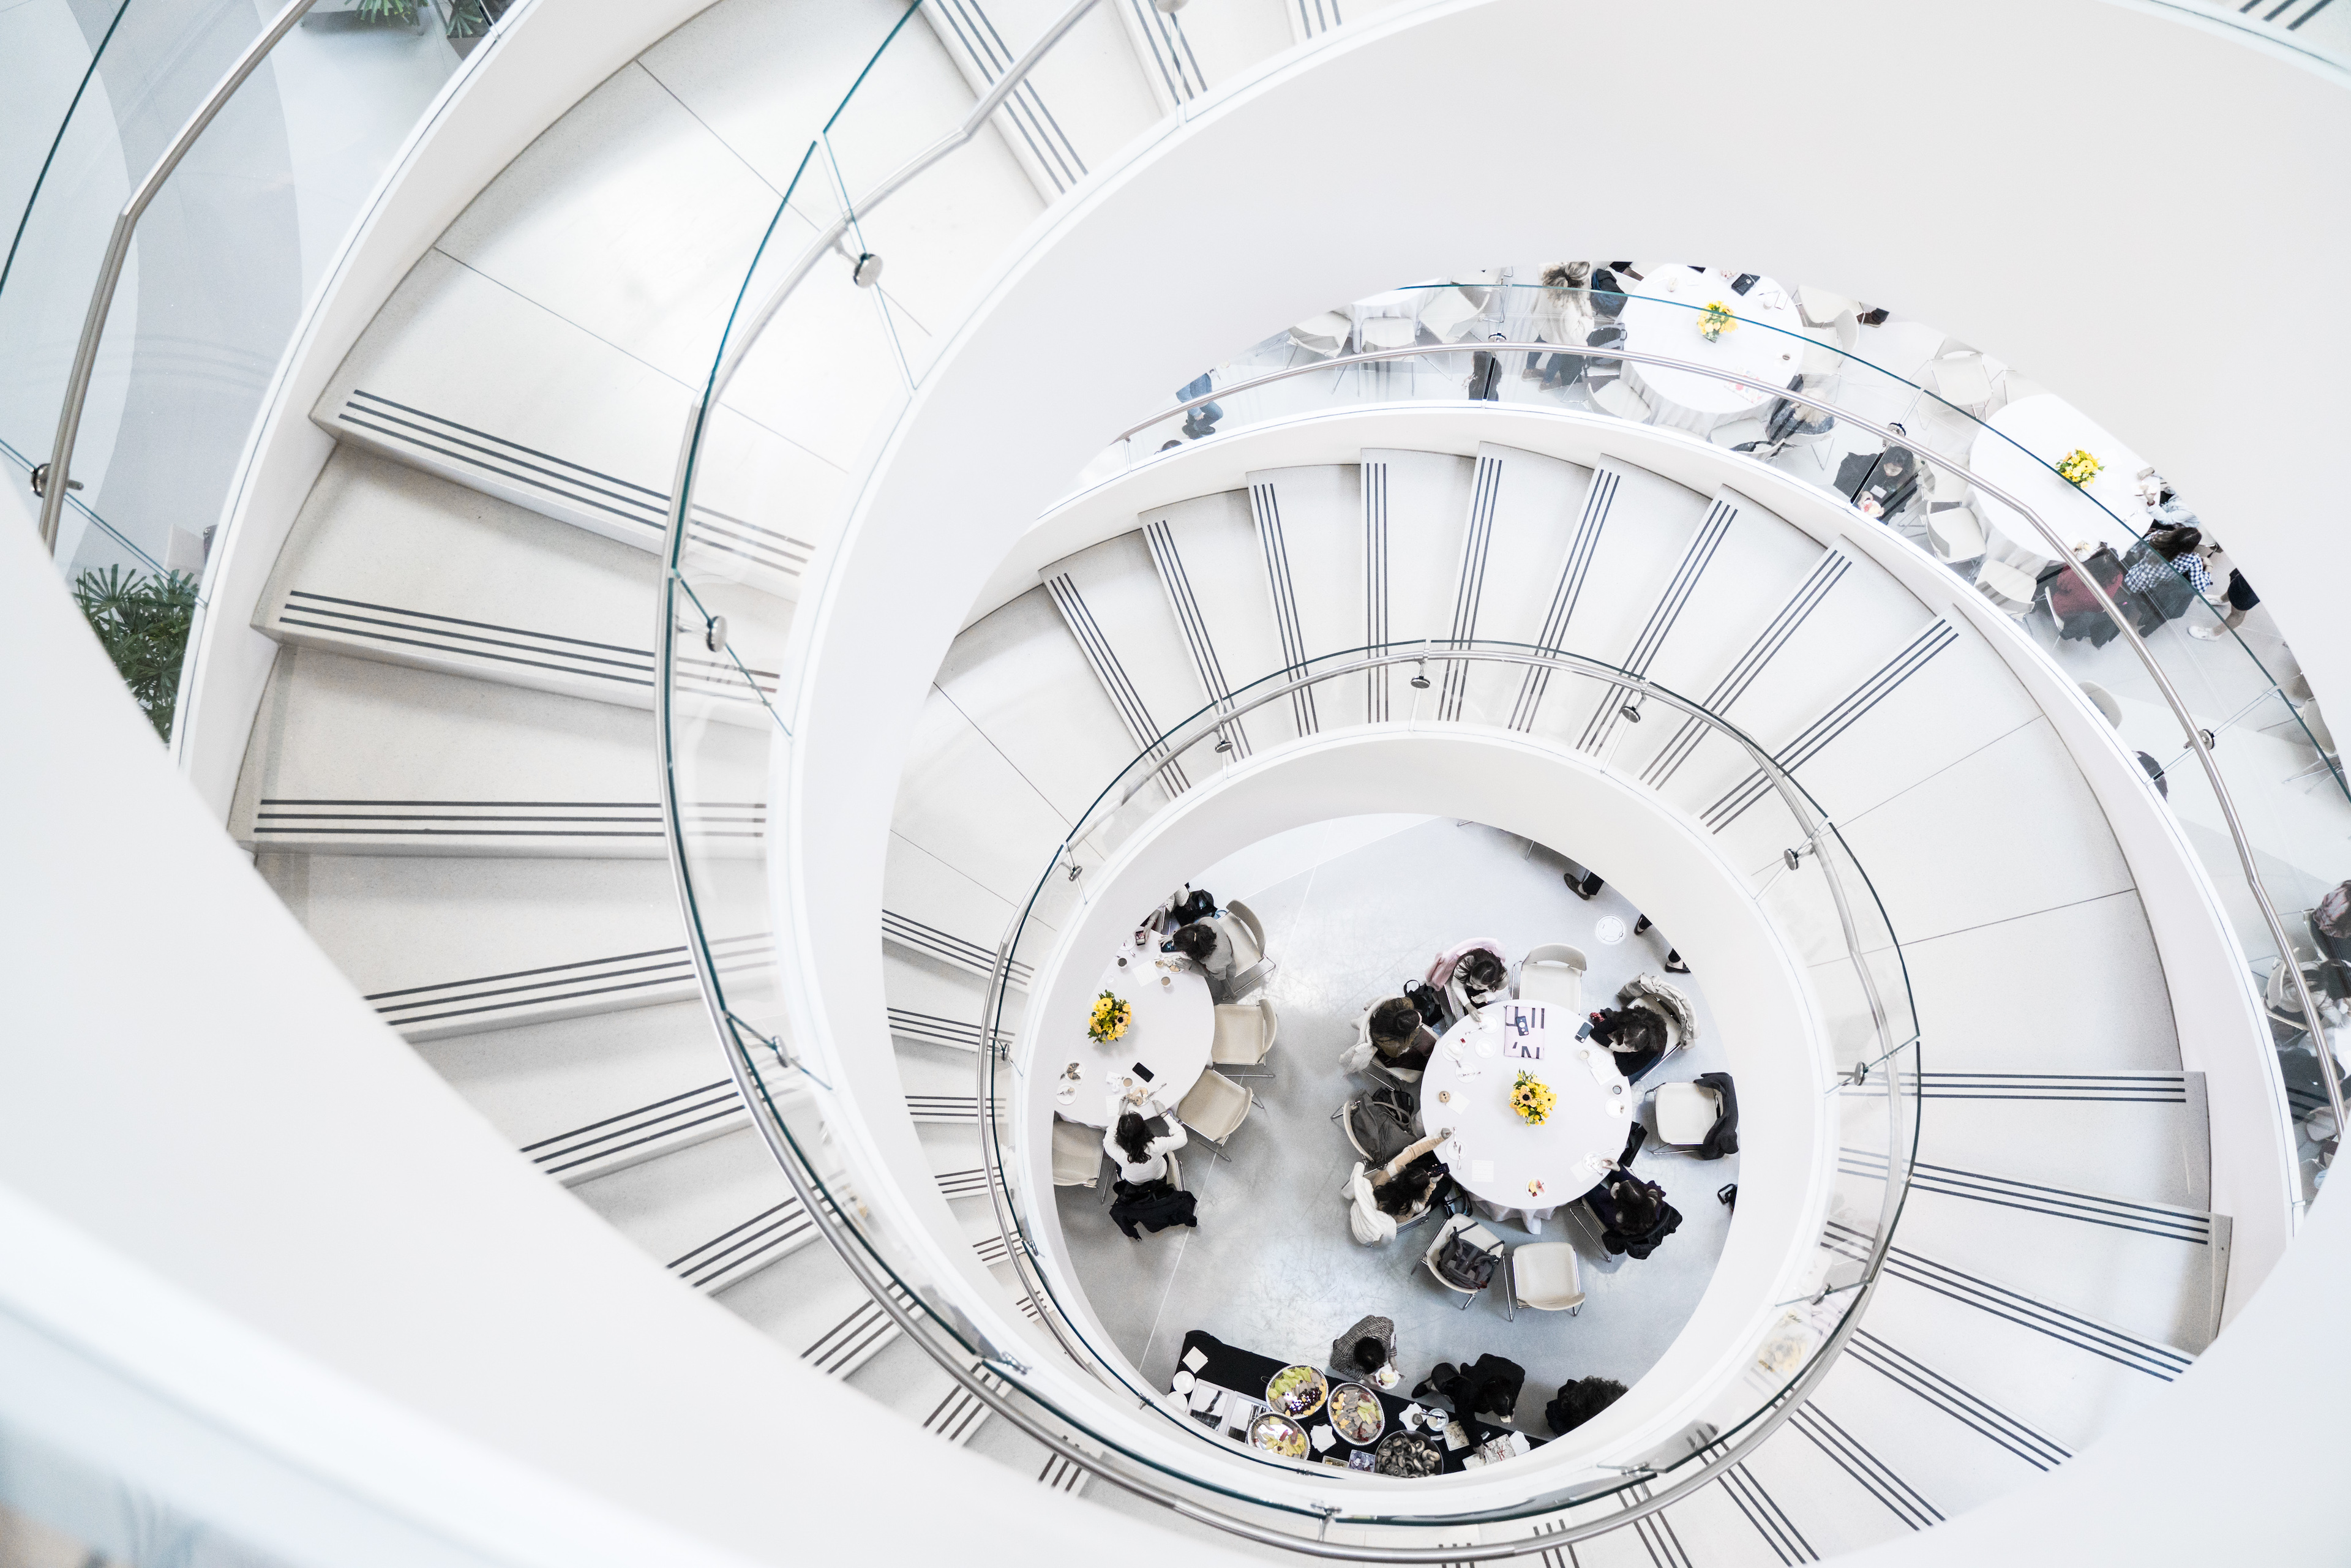 Spiral staircase looking down onto people around tables.